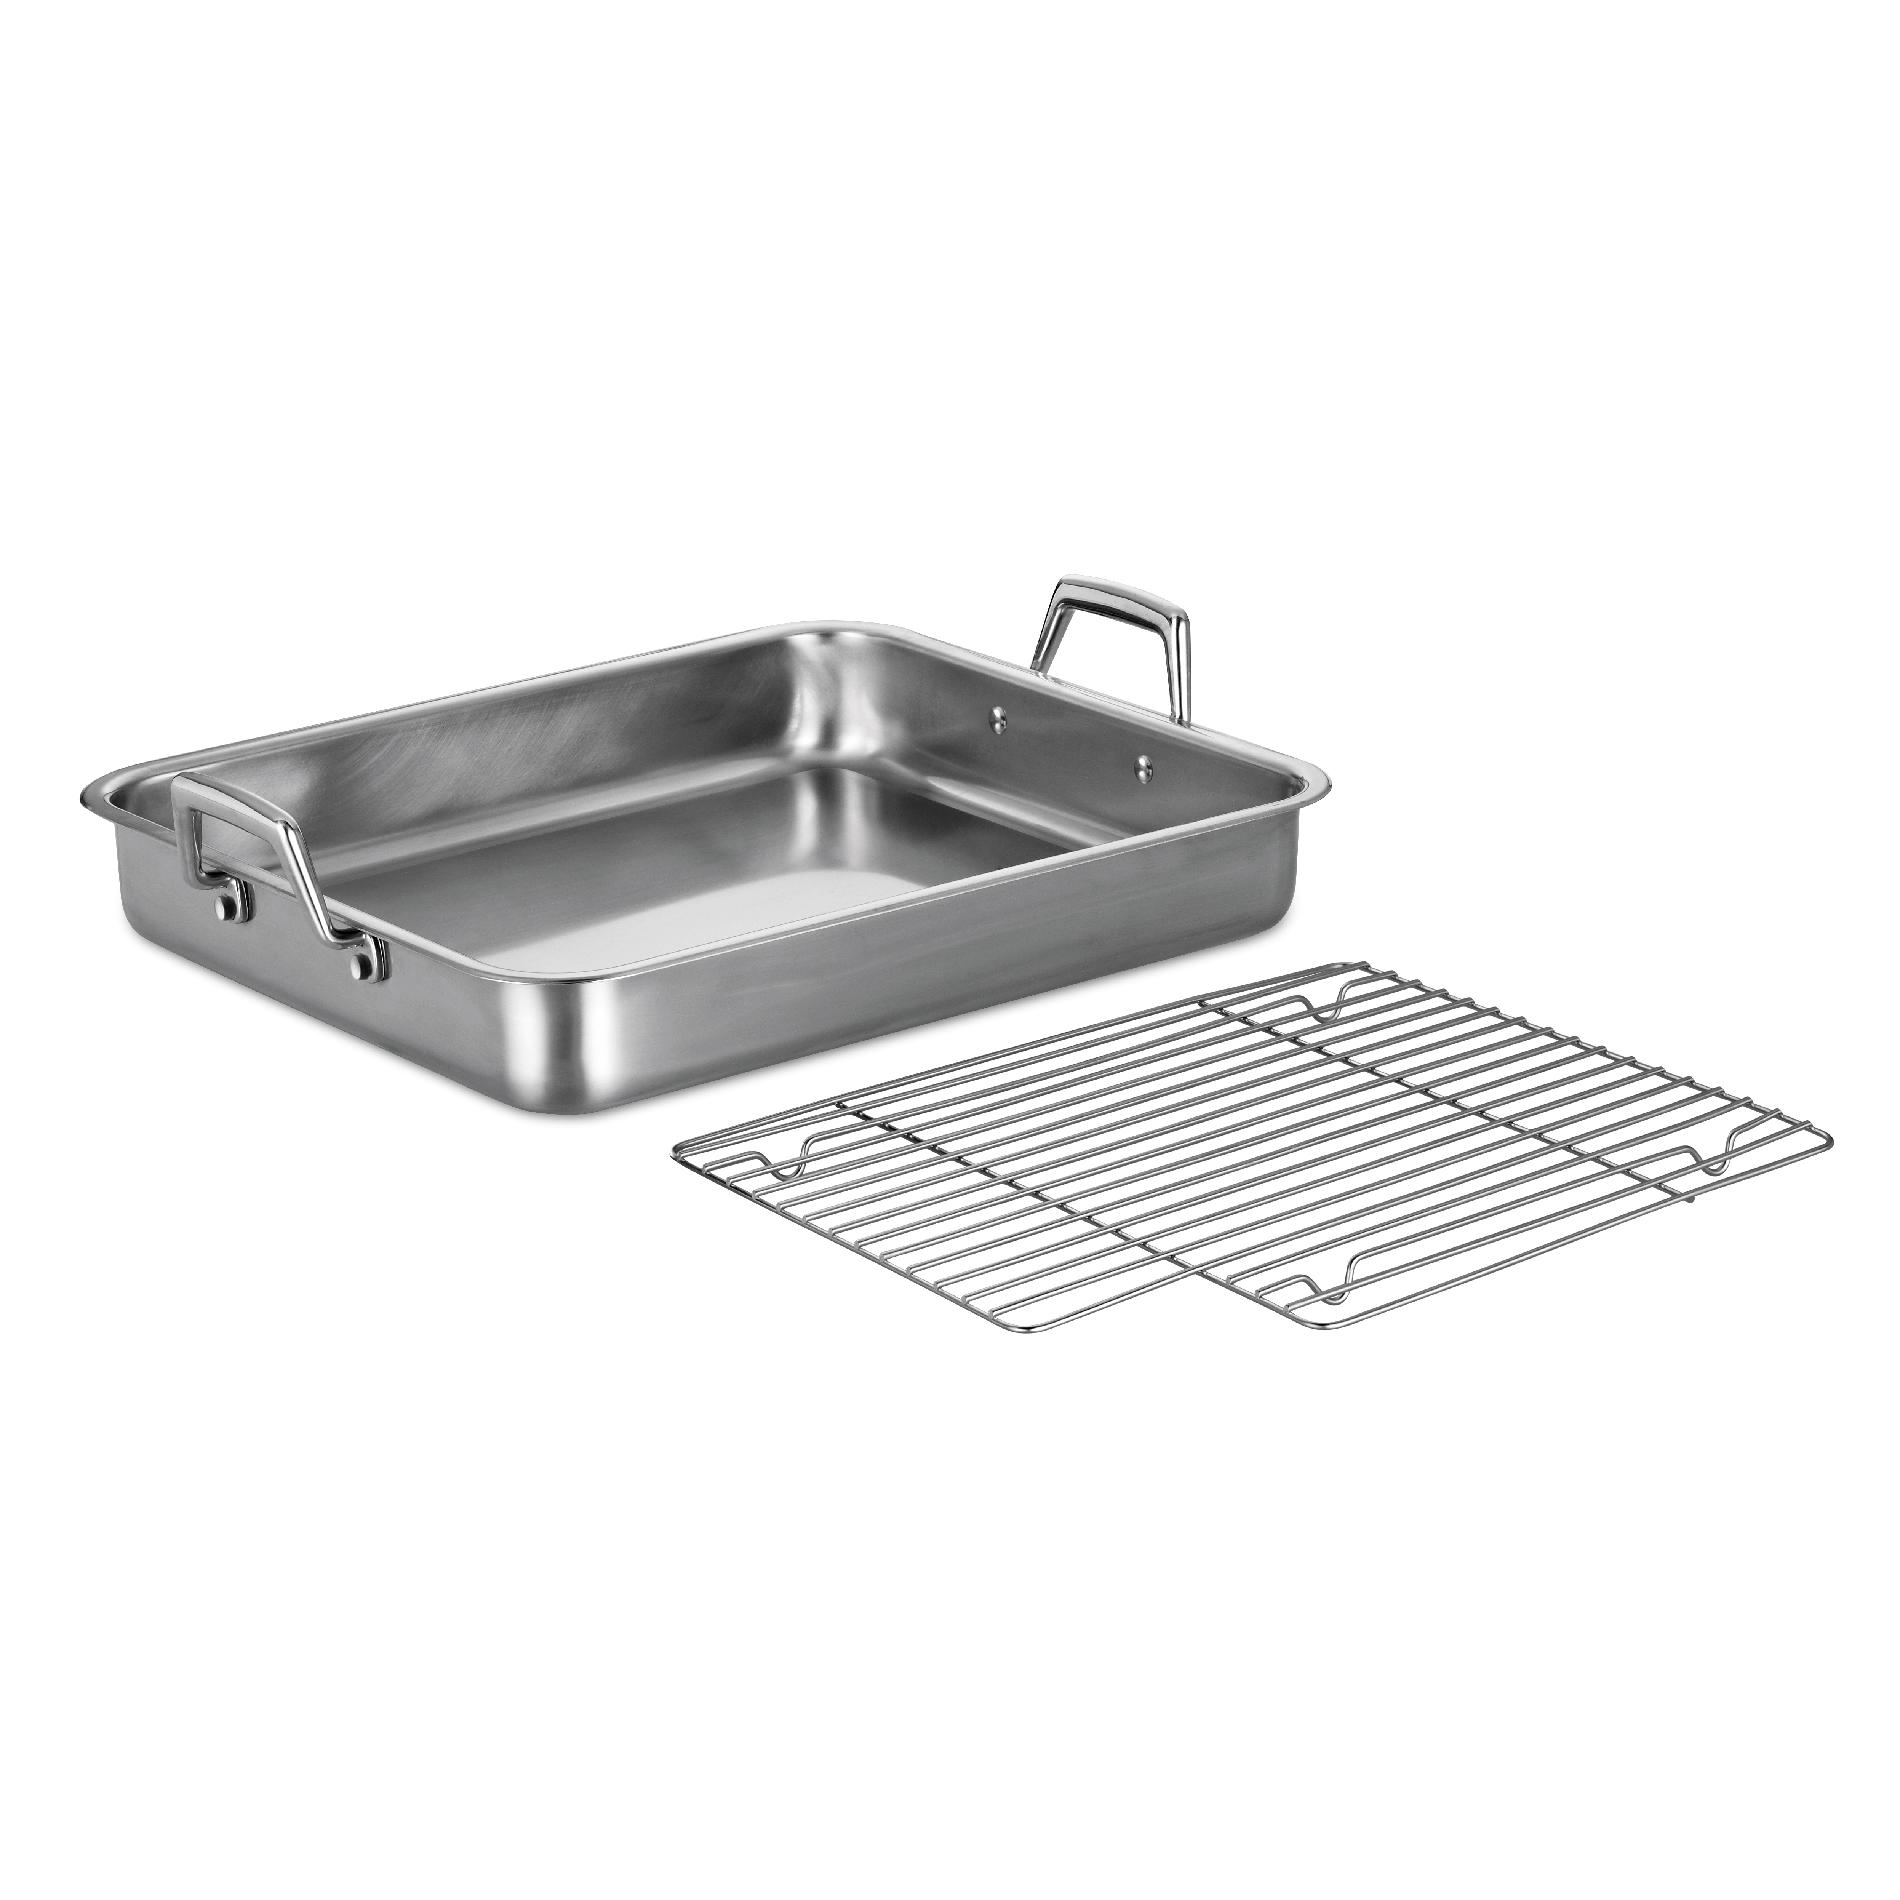 0016017076143 - GOURMET PRIMA 18/10 STAINLESS STEEL 16.5 IN ROASTING PAN - INCLUDES BASTING GRILL